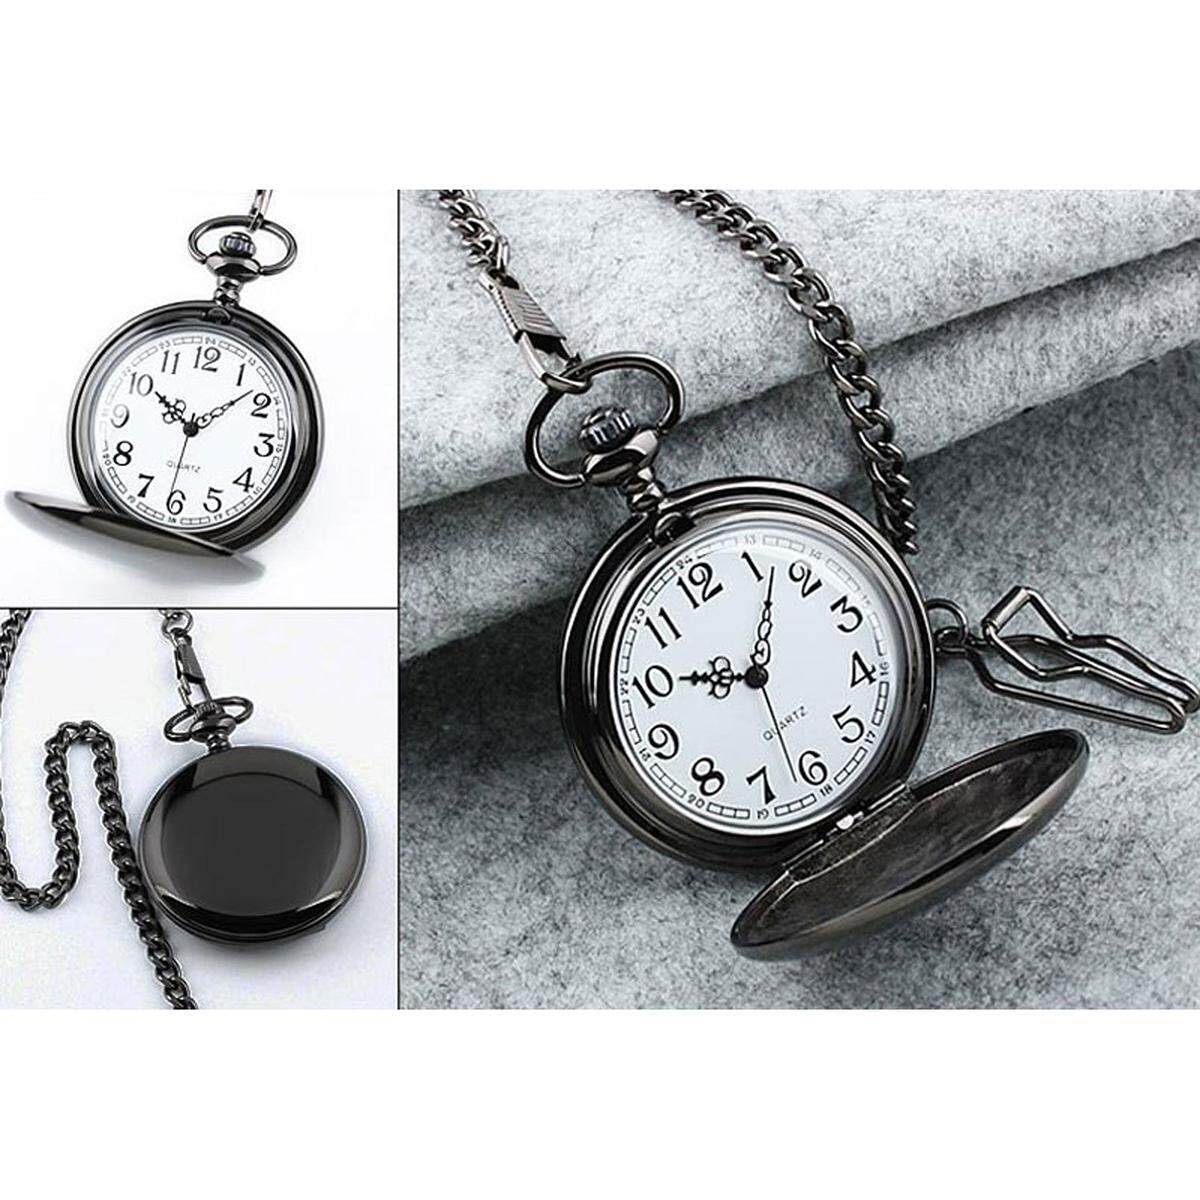 Mens Branded Watches With Best Price In Malaysia Bulova 90271 Jam Tangan Pria Silver Blank Stainless Steel Case White Dial Arabic Numeral Pocket Watch Chain Gift Box